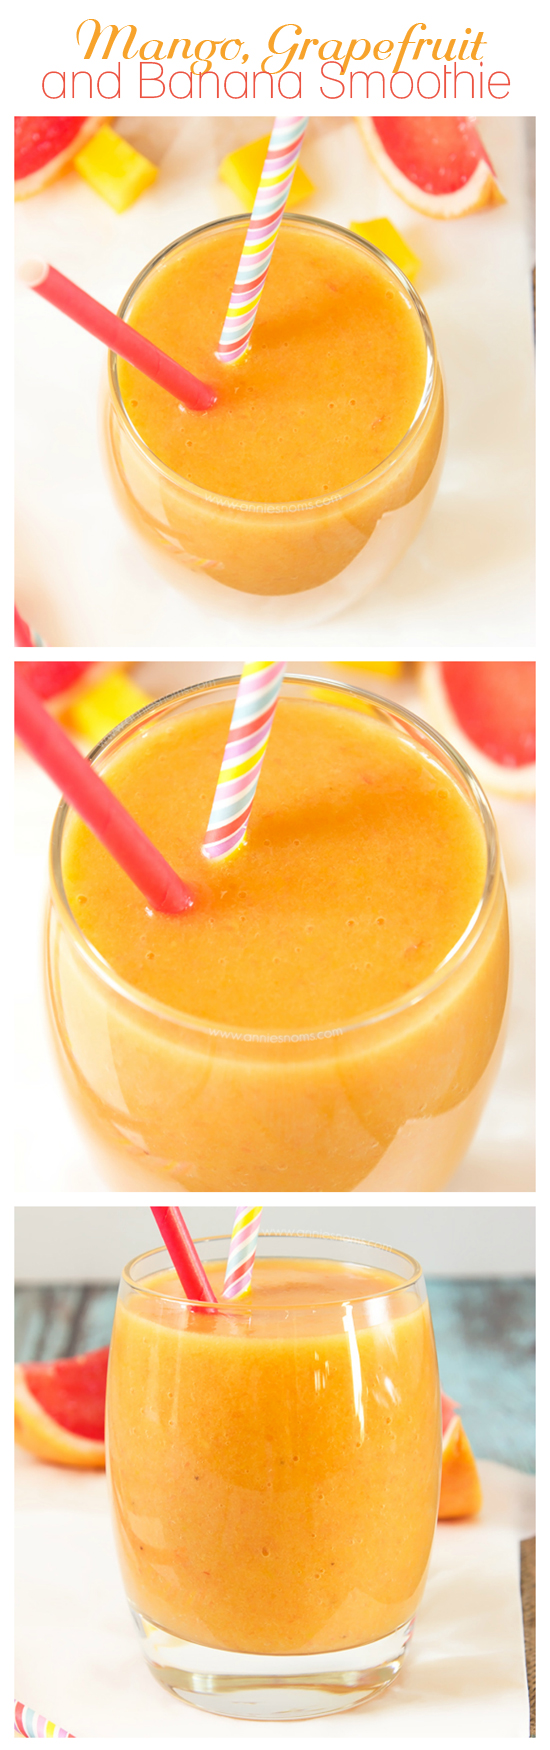 This Mango, Grapefruit and Banana Smoothie marries the strong, tart flavours of grapefruit with the soft, creamy taste of banana and tropical, sweet mango. Filling, fruity and just perfect to inject some sunshine into your day!